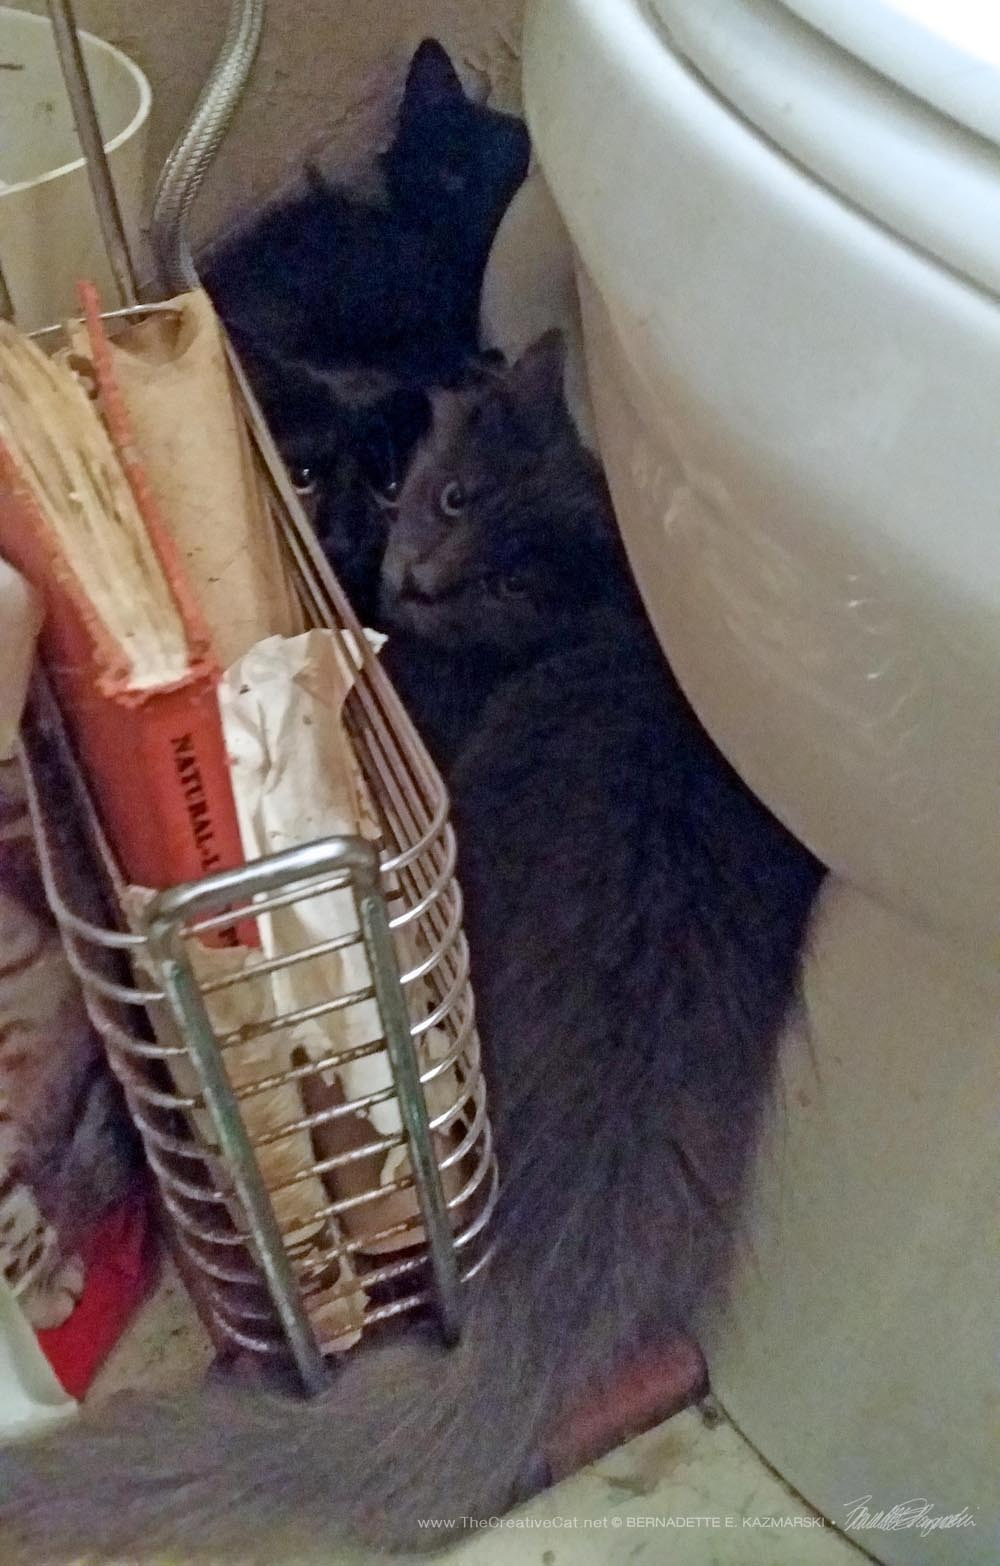 What would frightened kittens do if not for toilets?